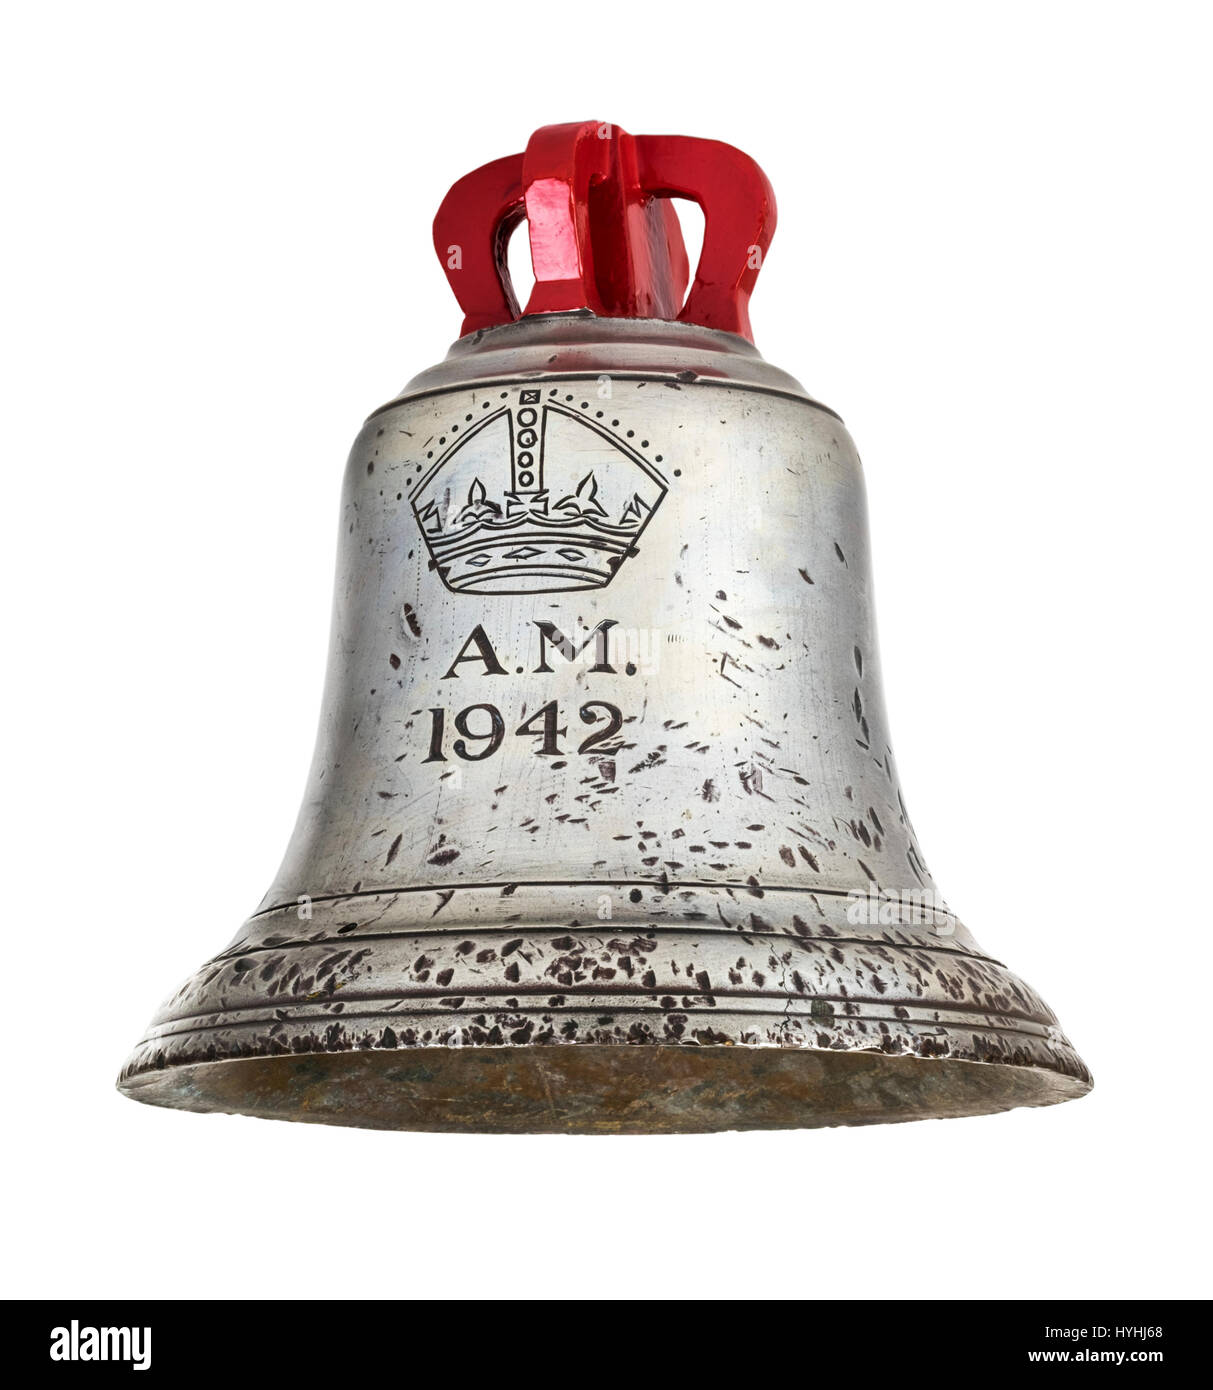 British WW2 Air Ministry large scramble bell from 1942, tolled to alert British Fighter Command Air Stations of - Stock Image